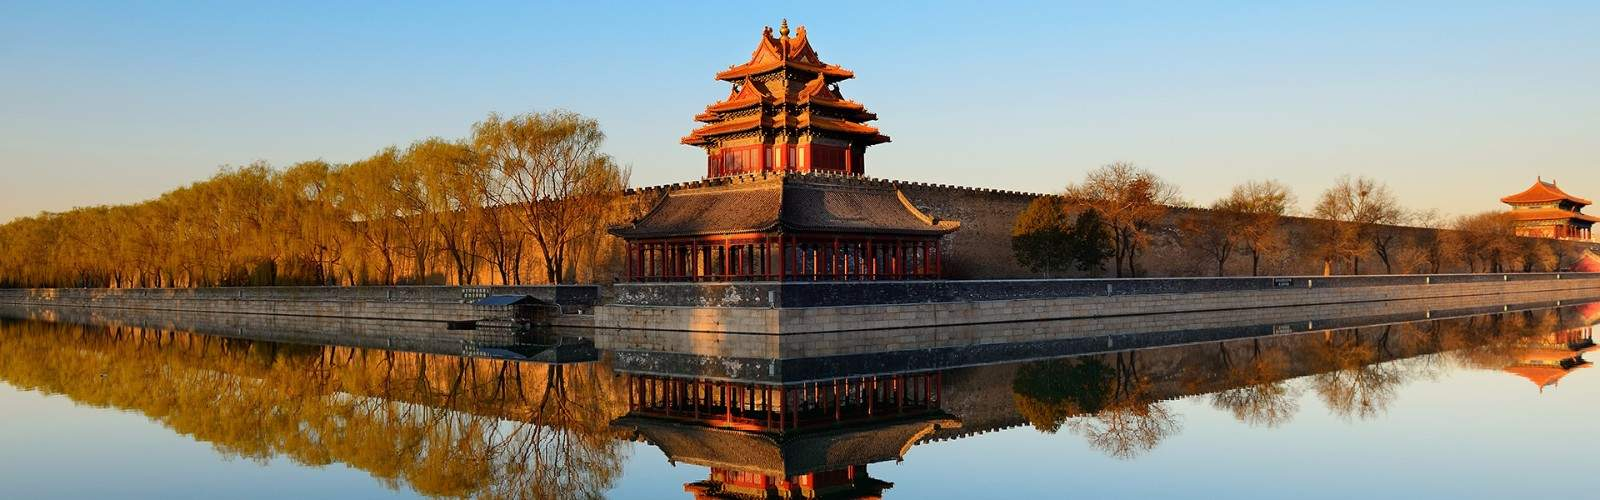 The Forbidden City Holidays